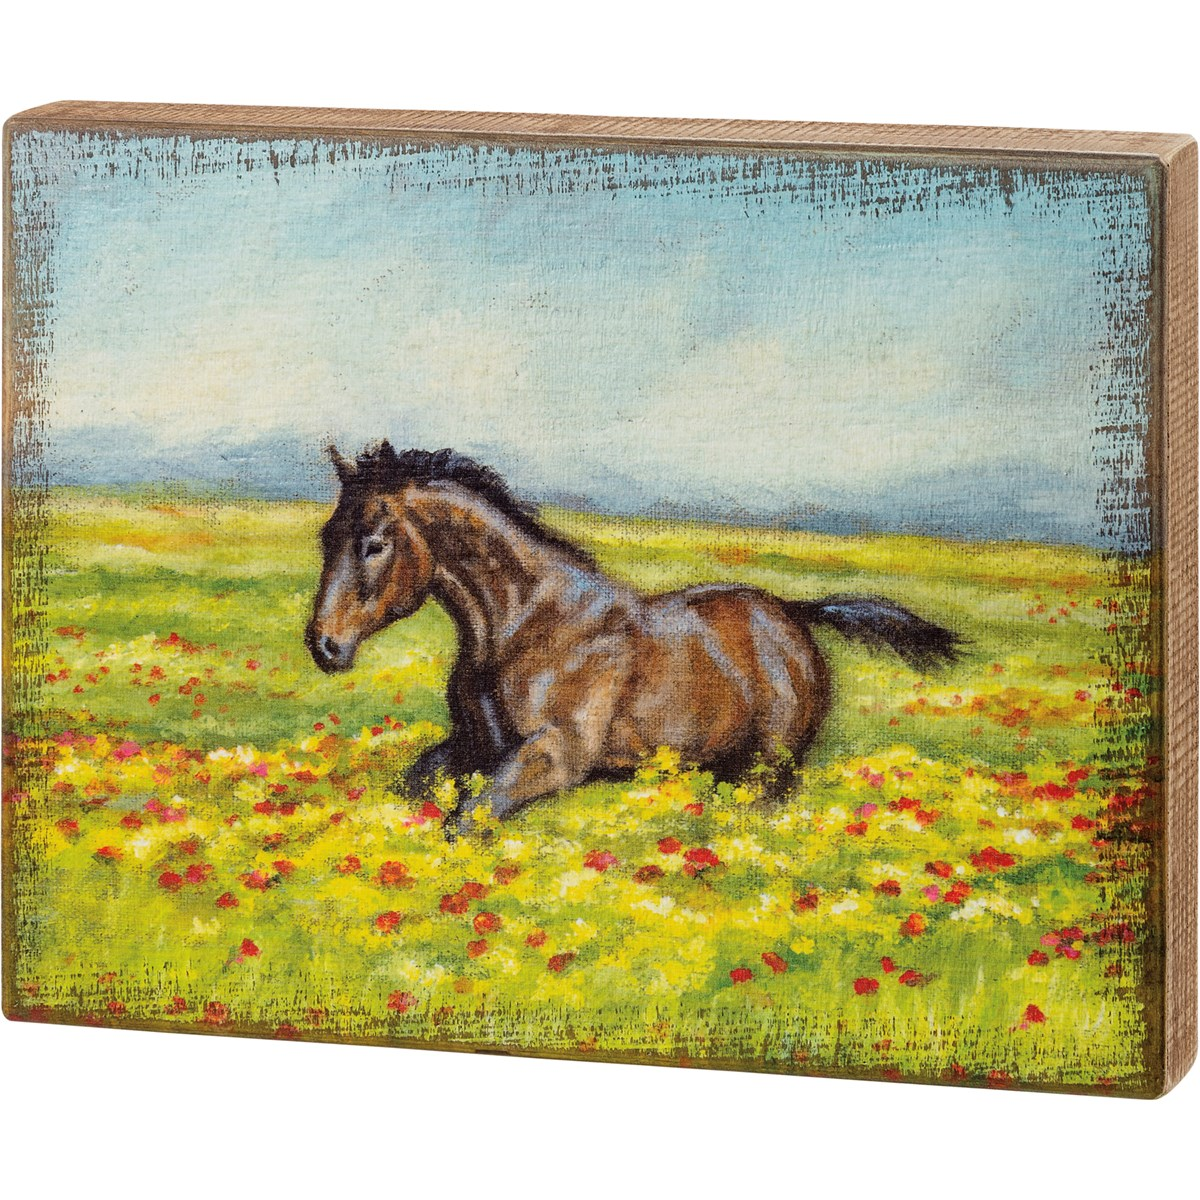 "Box Sign - Horse In Field - 14"" x 11"" x 1.75"" - Wood"